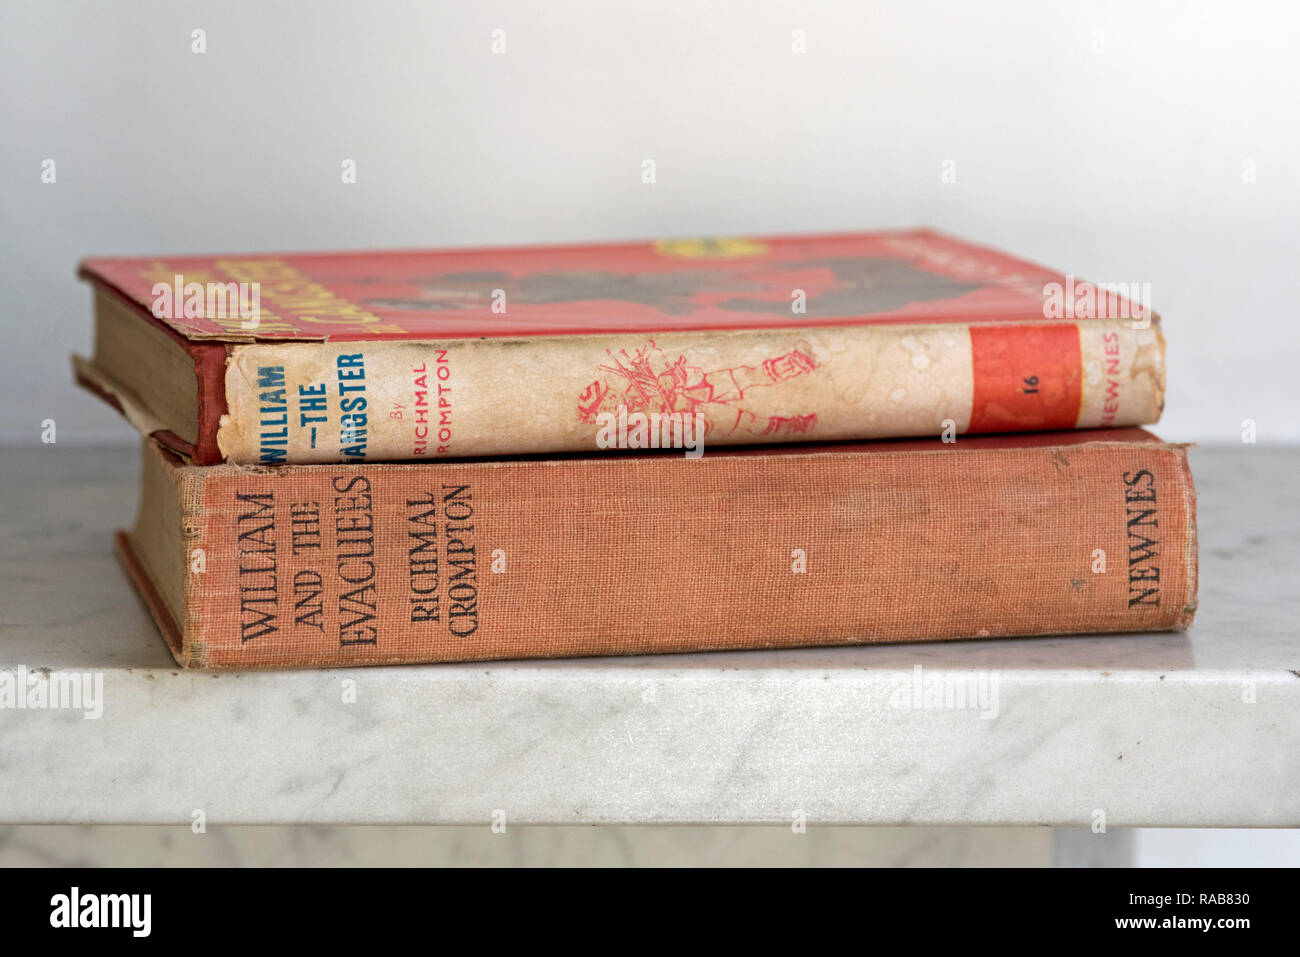 Two vintage Just William books: William the Gangster and William and the Evacuees by Richmal Crompton on grey marble mantlepiece. Editorial use only. - Stock Image